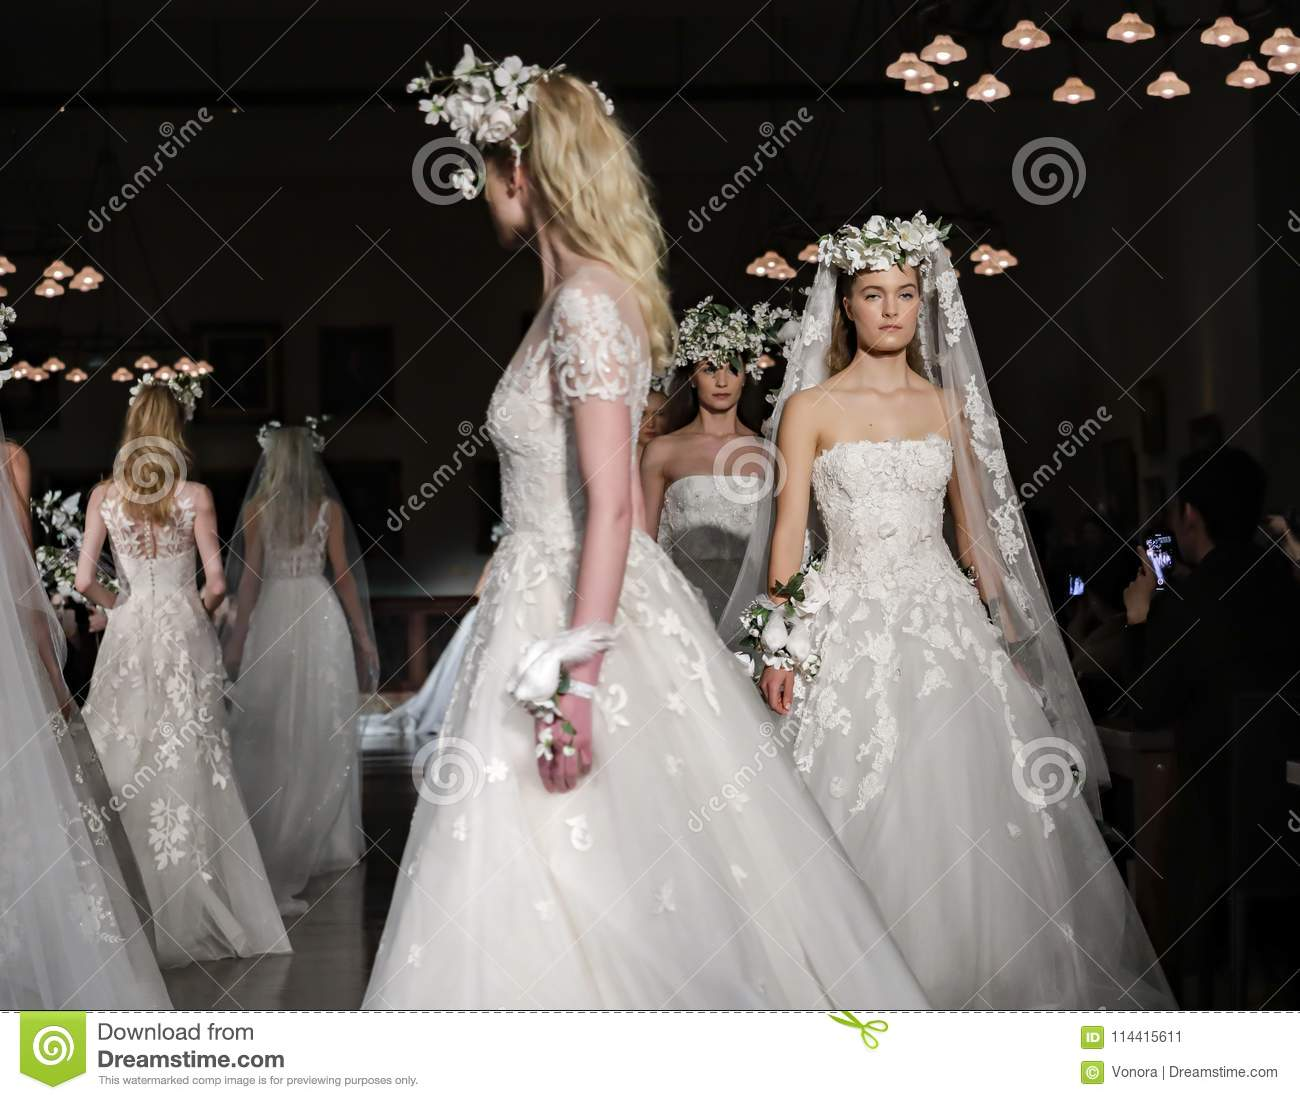 26aed1e2e32f New York, NY, USA - April 12, 2018: Models walk runway for Reem Acra Bridal  Spring/Summer 2019 collection during NY Bridal Wweek at NY Public Library,  ...